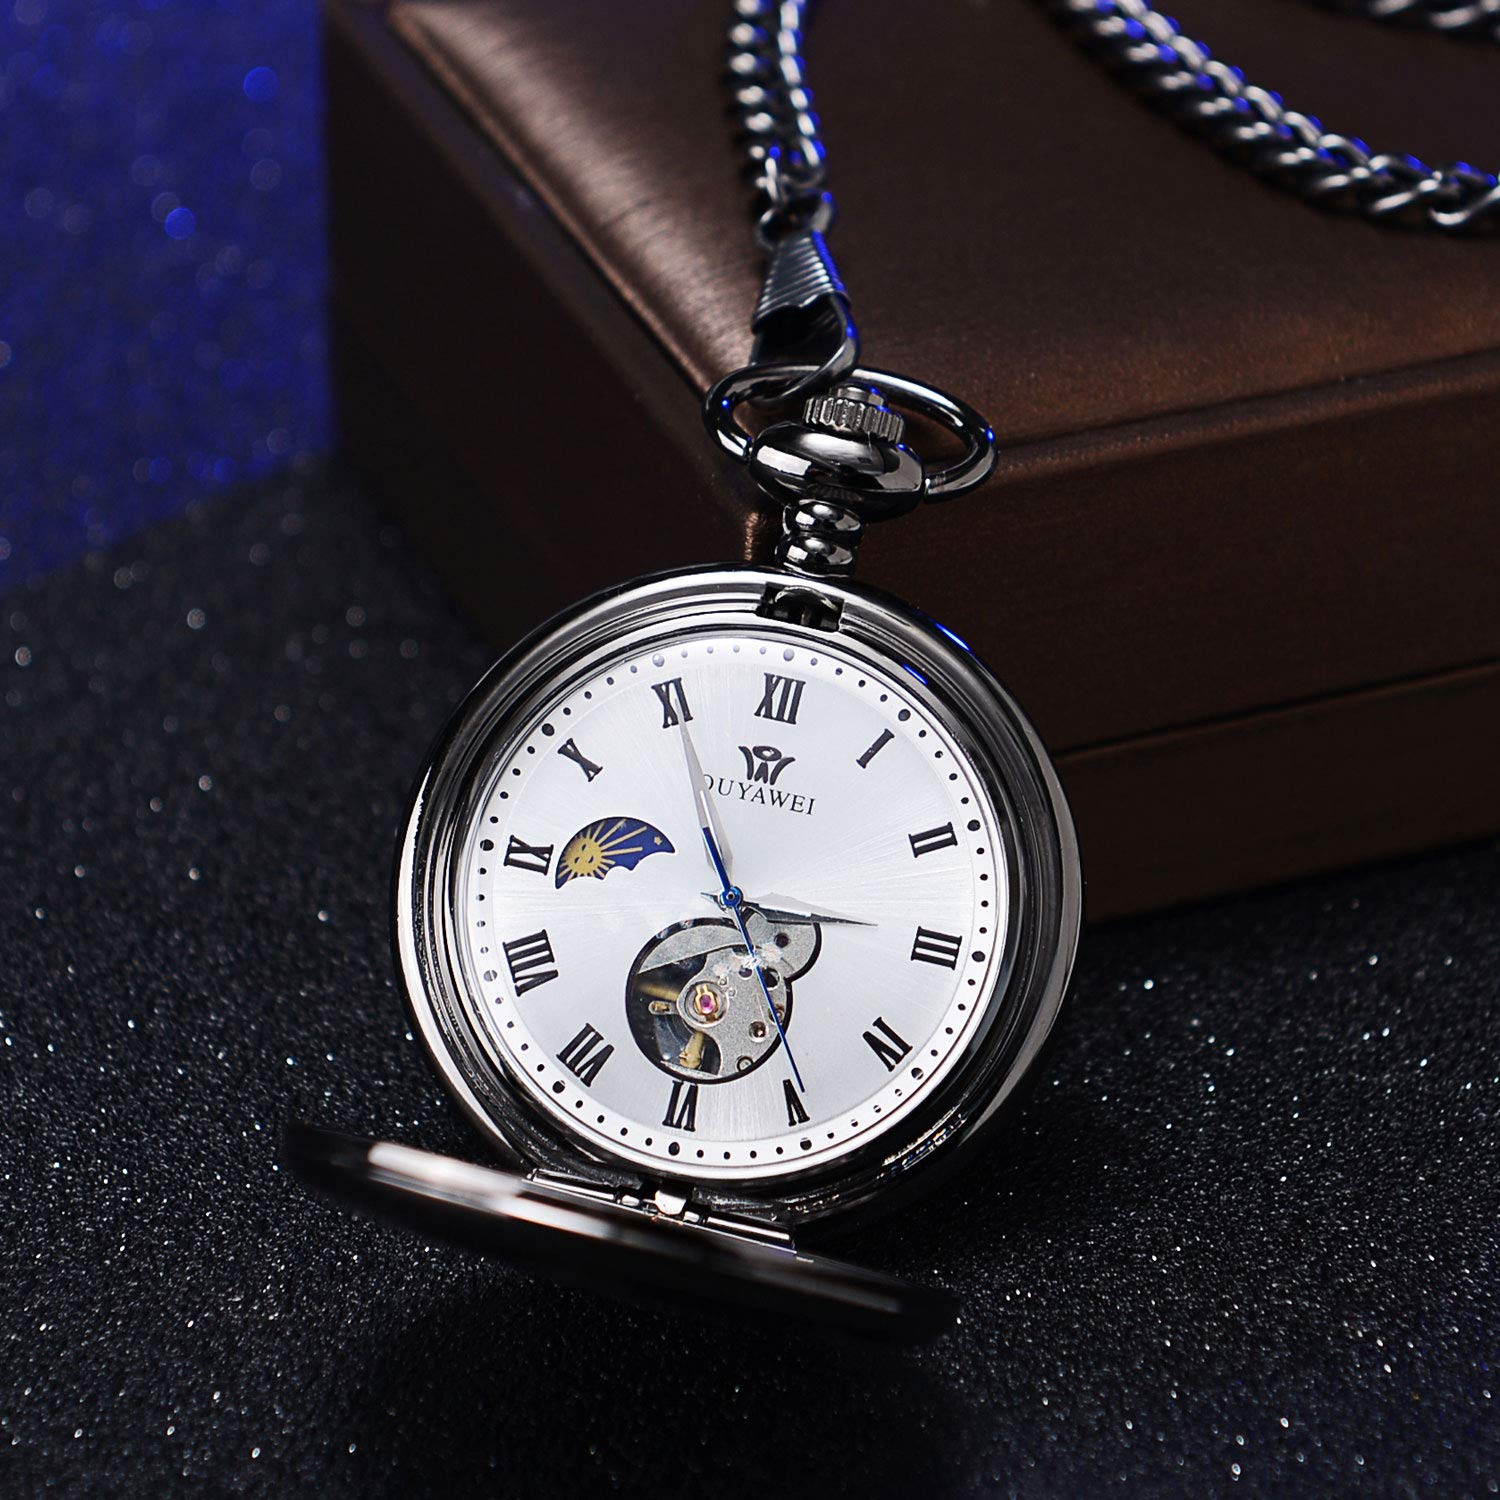 Mens Engraved Gifts for Valentine's Day, Anniversary Birthday Graduation Christmas Personalized Mechanical Pocket Watch with Gift Box (The Day I met You) by Ginasy (Image #6)